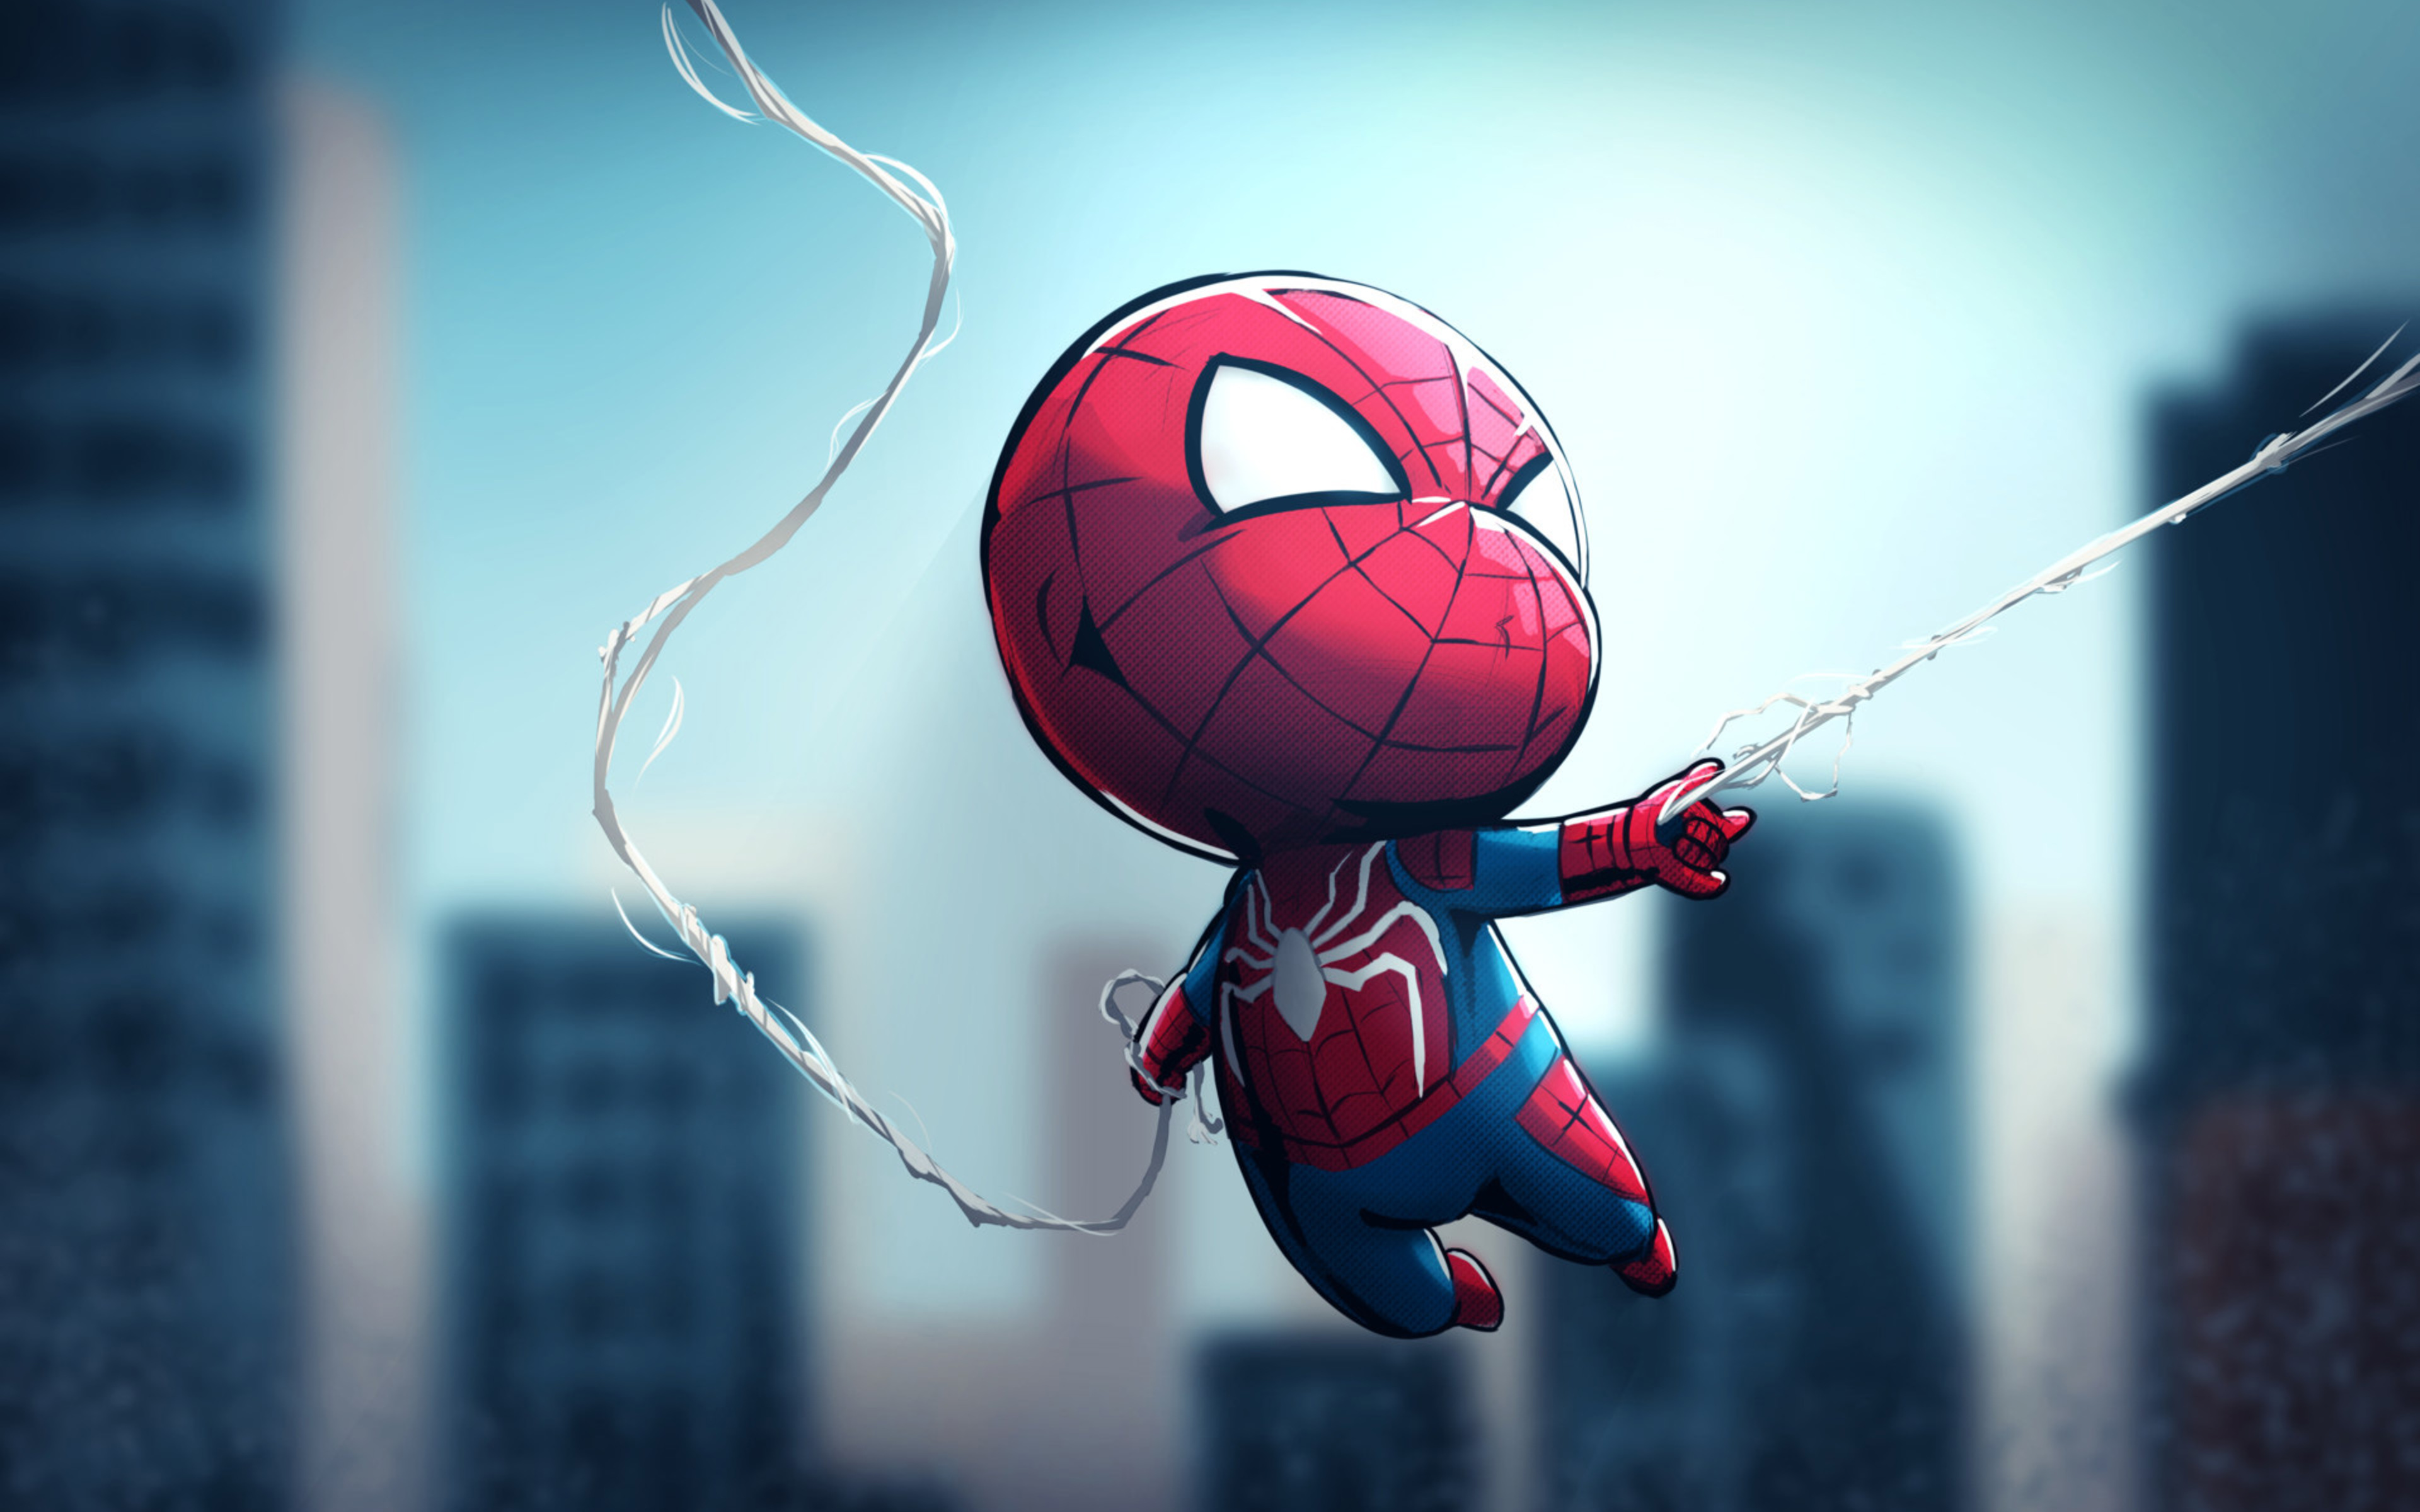 3840x2400 chibi spiderman 4k hd 4k wallpapers images backgrounds photos and pictures - Chibi wallpaper hd ...